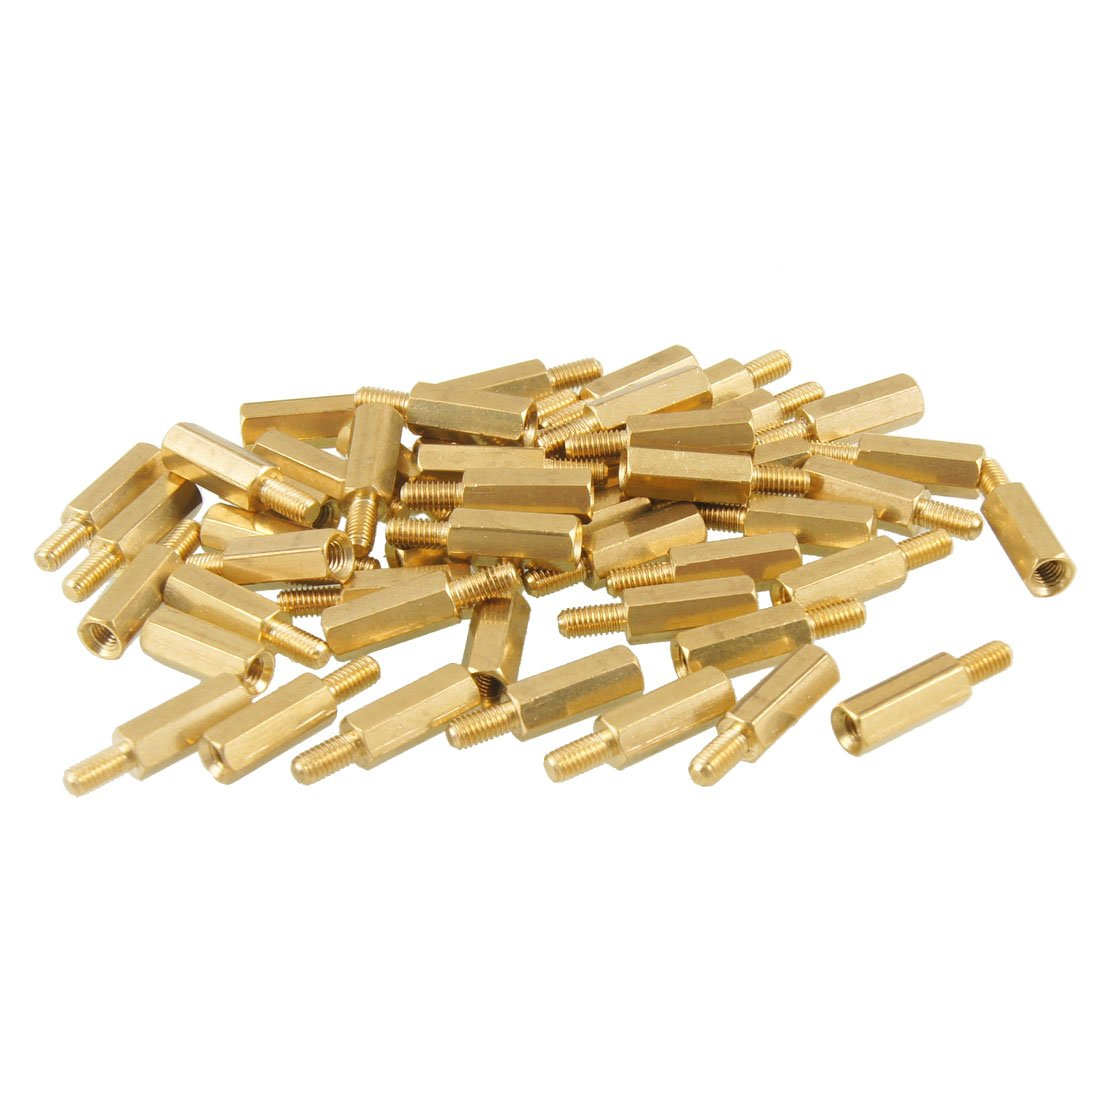 NFLC 50 Pcs Brass Screw Hexagonal Stand-off Spacer M3 Male x M3 Female 12mm Body Length 20pcs m3 copper standoff spacer stud male to female m3 4 6mm hexagonal stud length 4 5 6 7 8 9 10 11 12mm